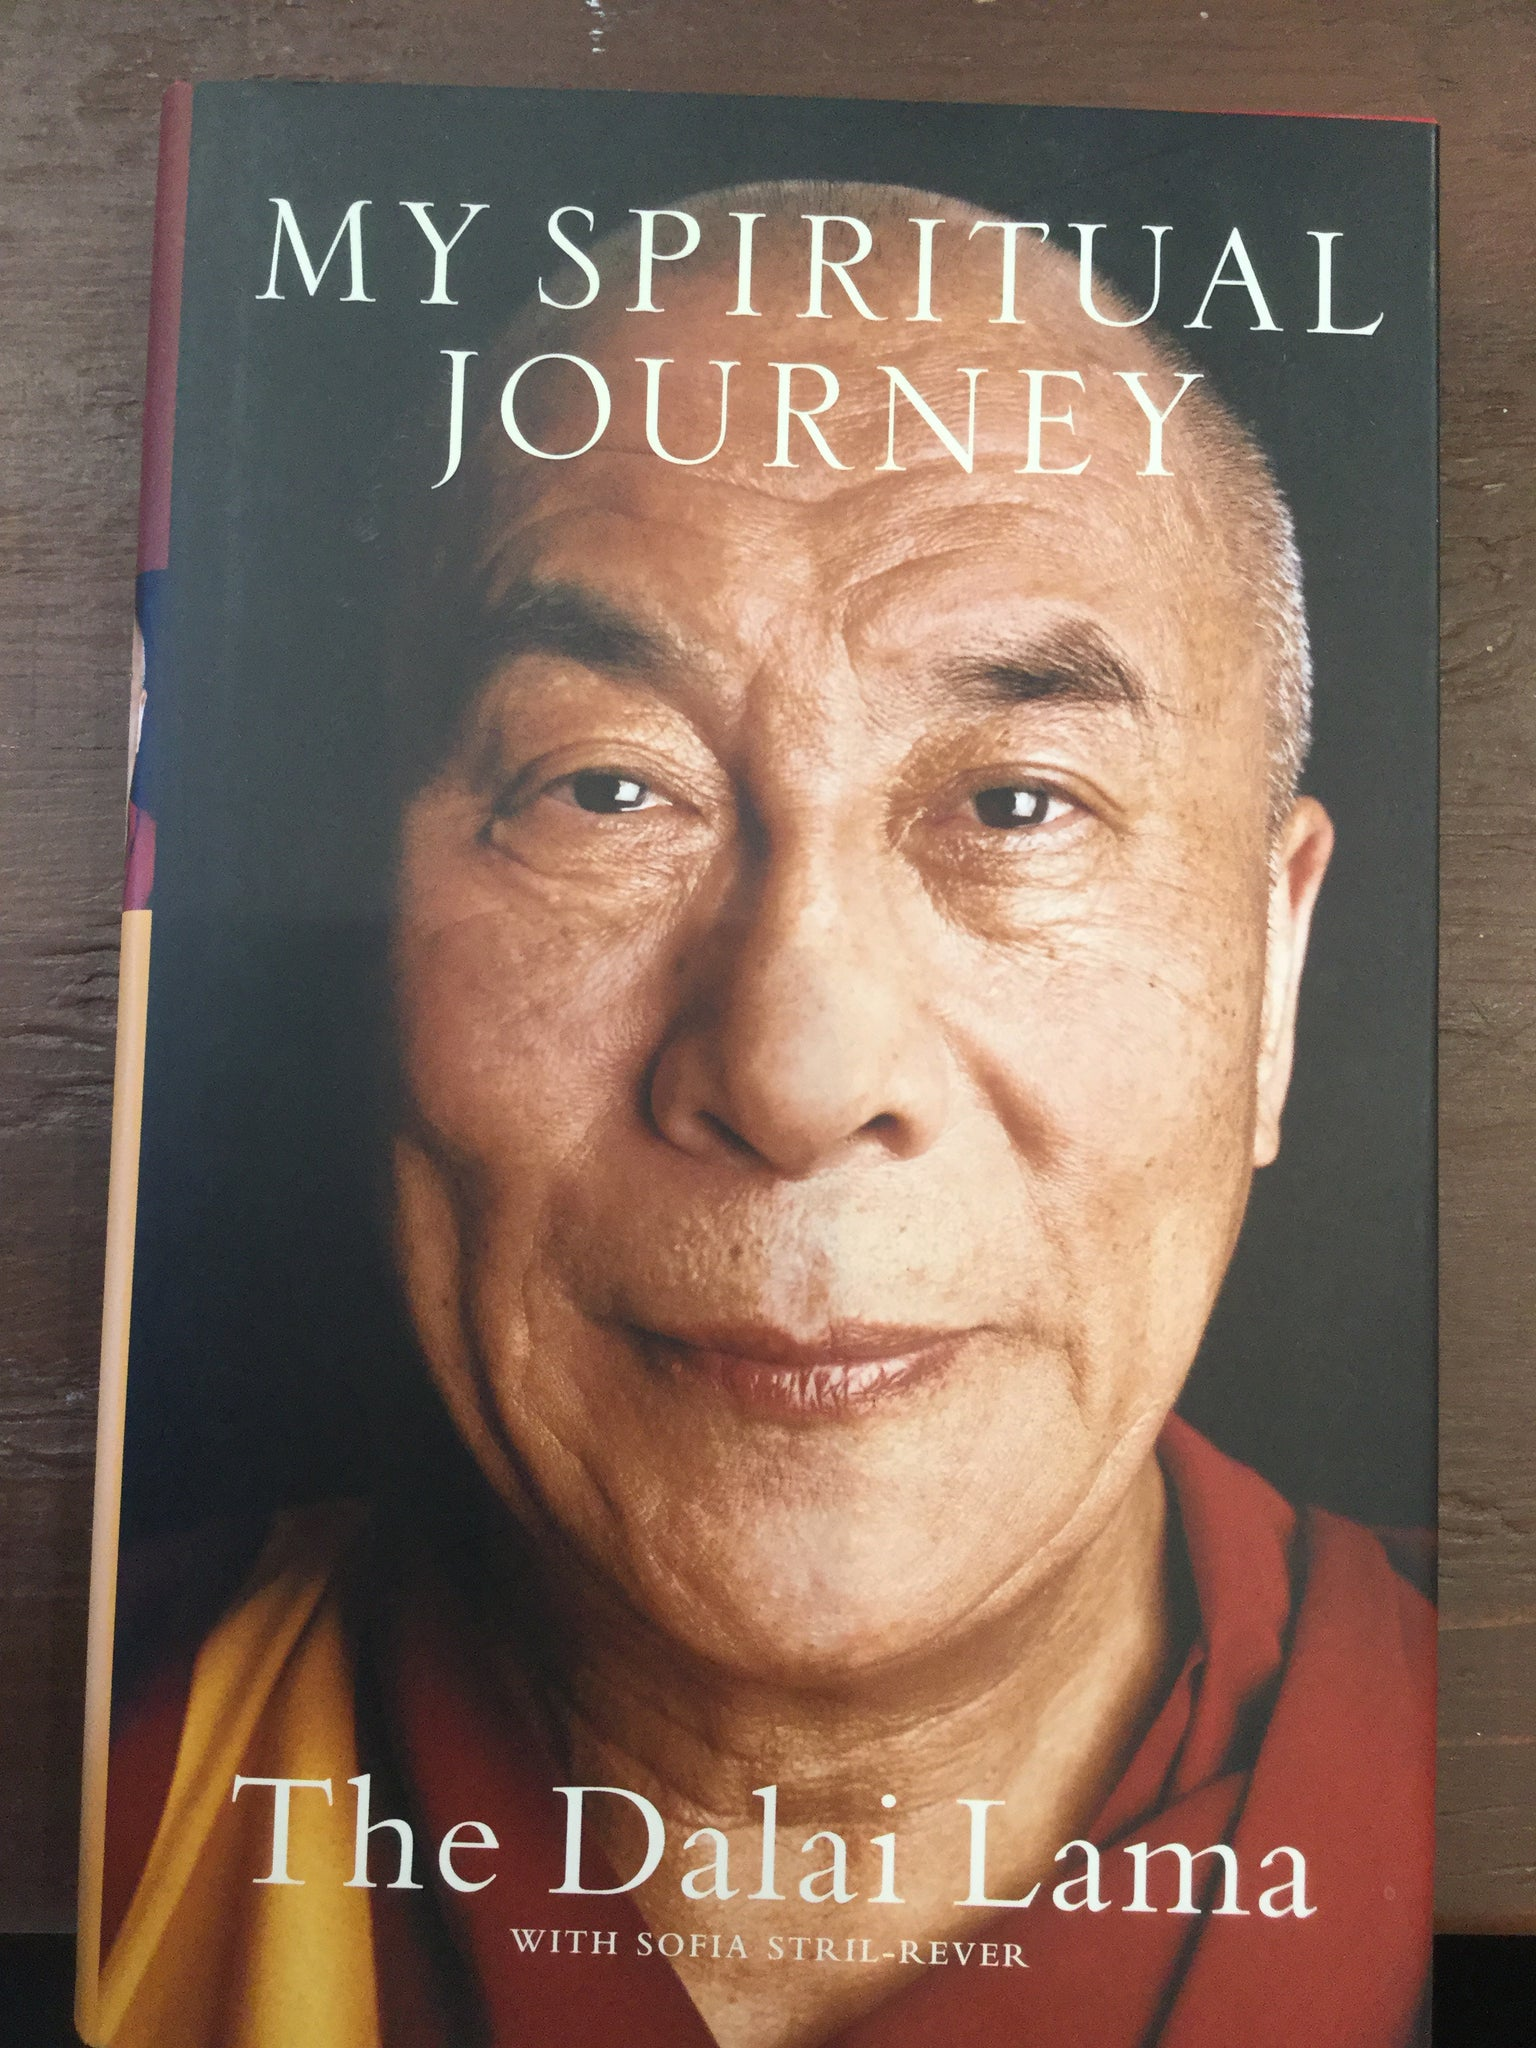 My Spiritual Journey by The Dalai Lama with Sofia Stril-Rever